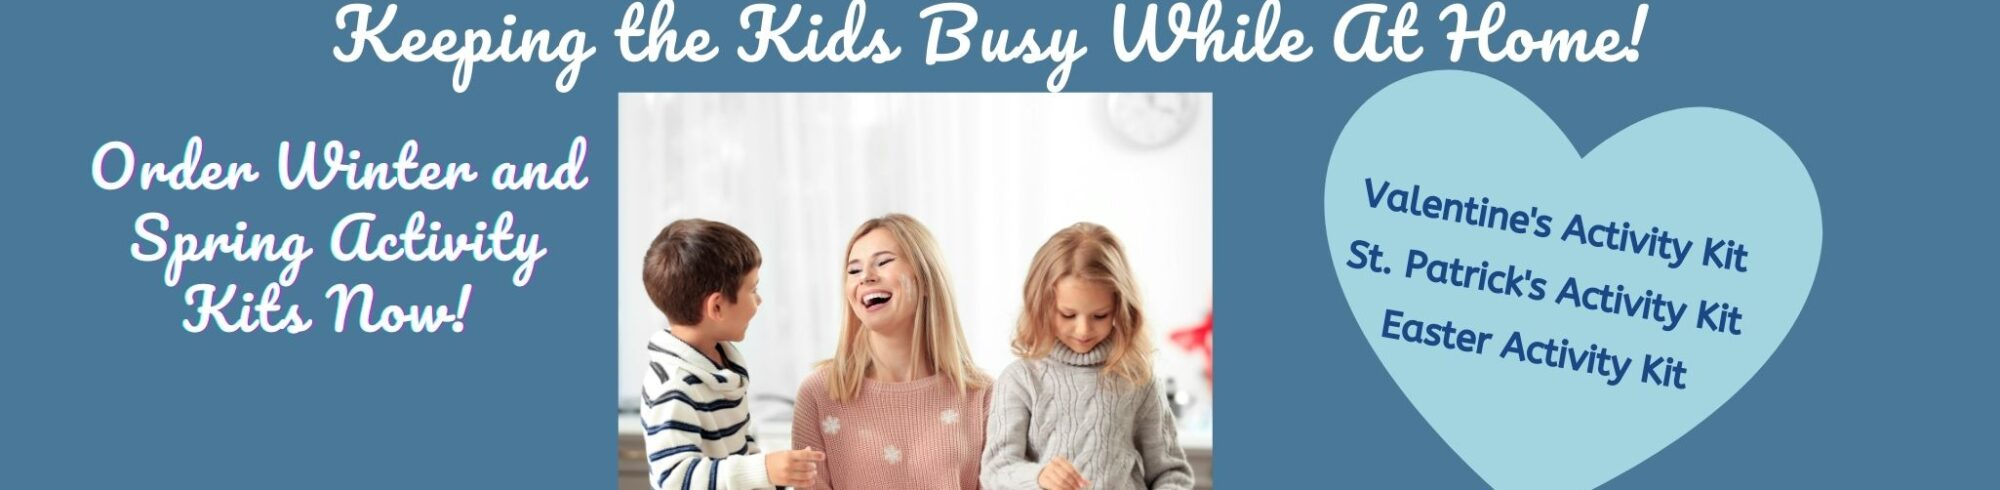 activity kits available for the holidays